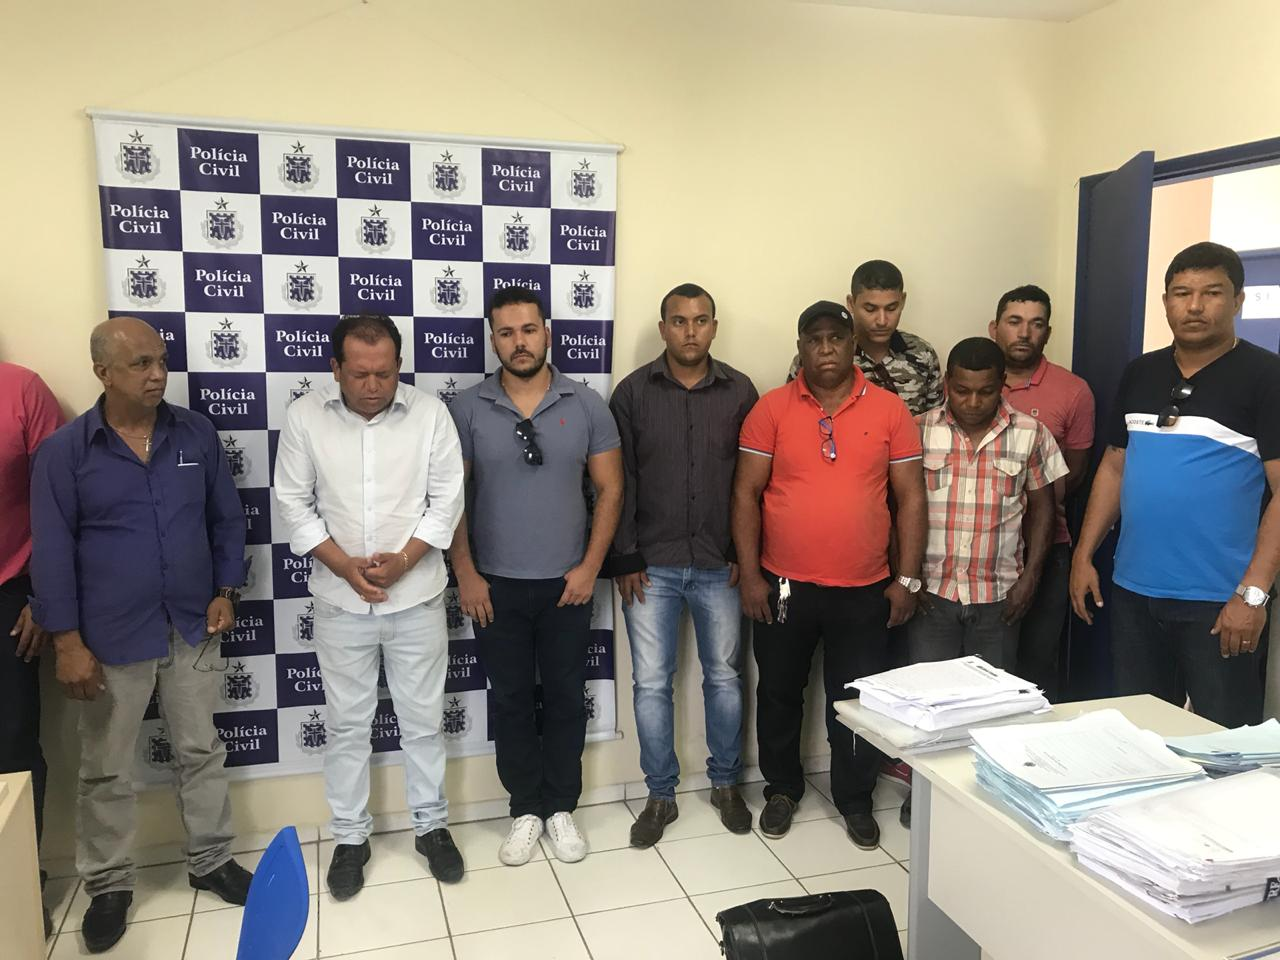 Photo of a apprehended criminal gang standing in police station